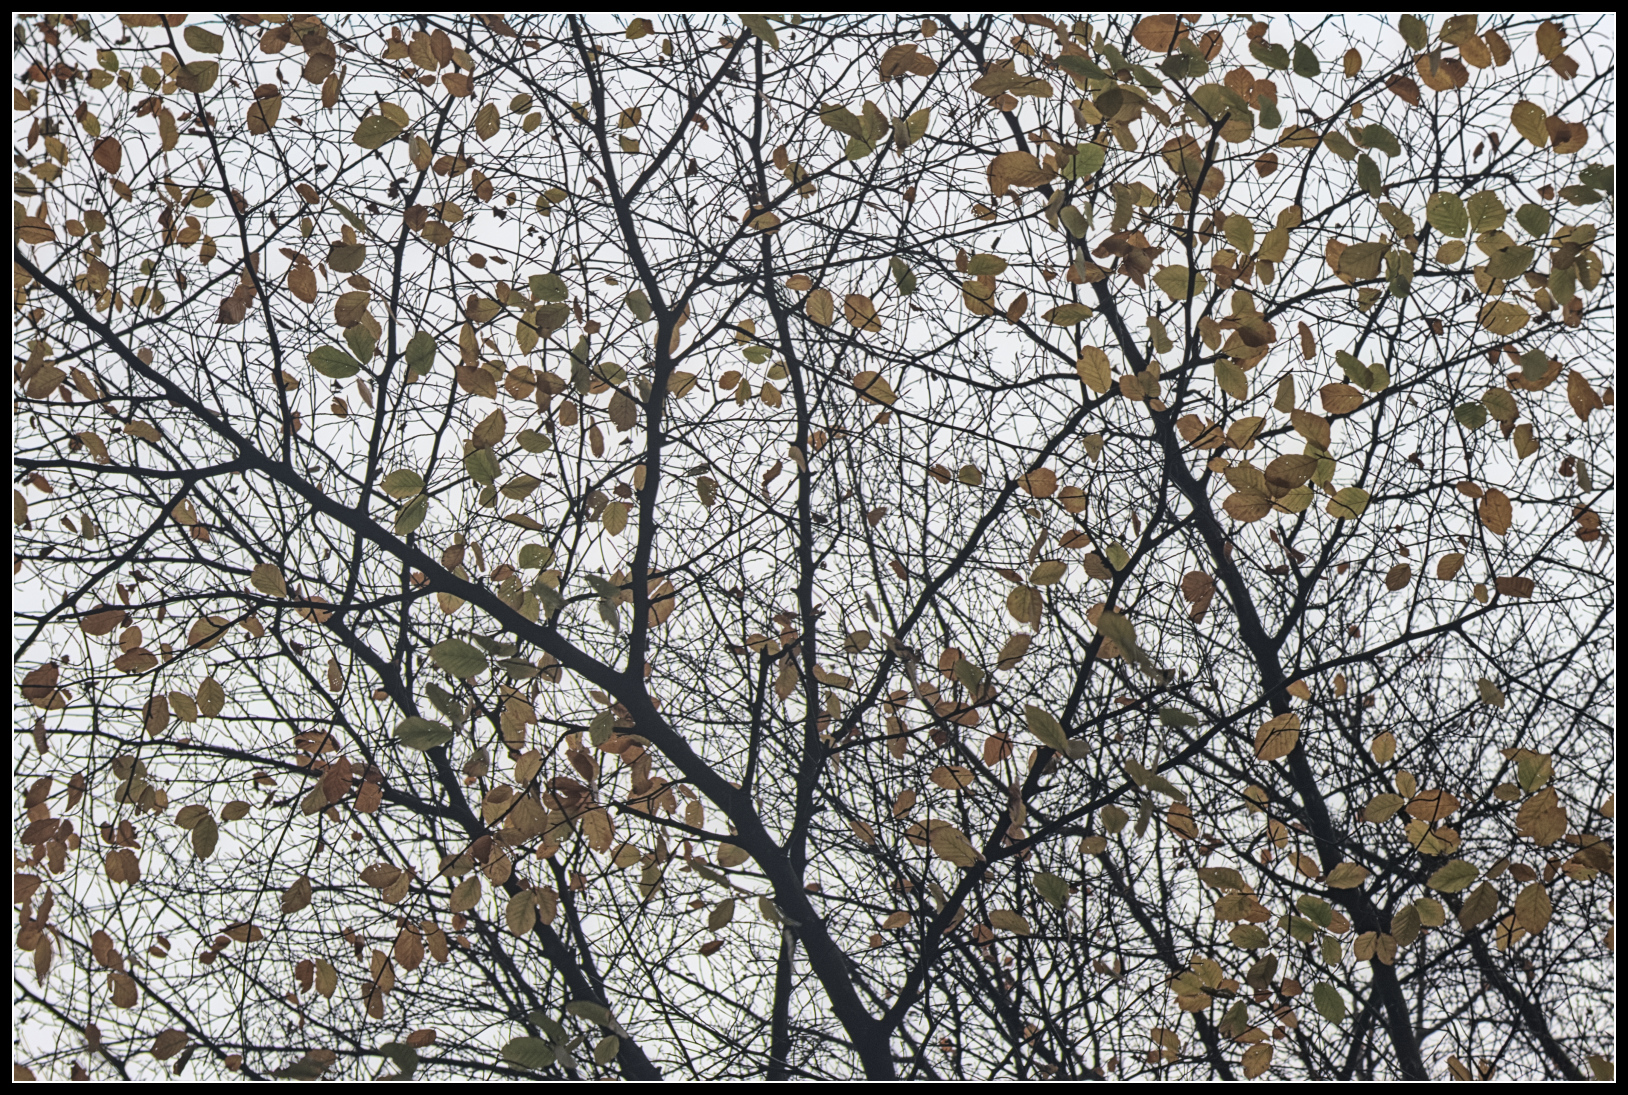 Abstract patterns of autumn leaves